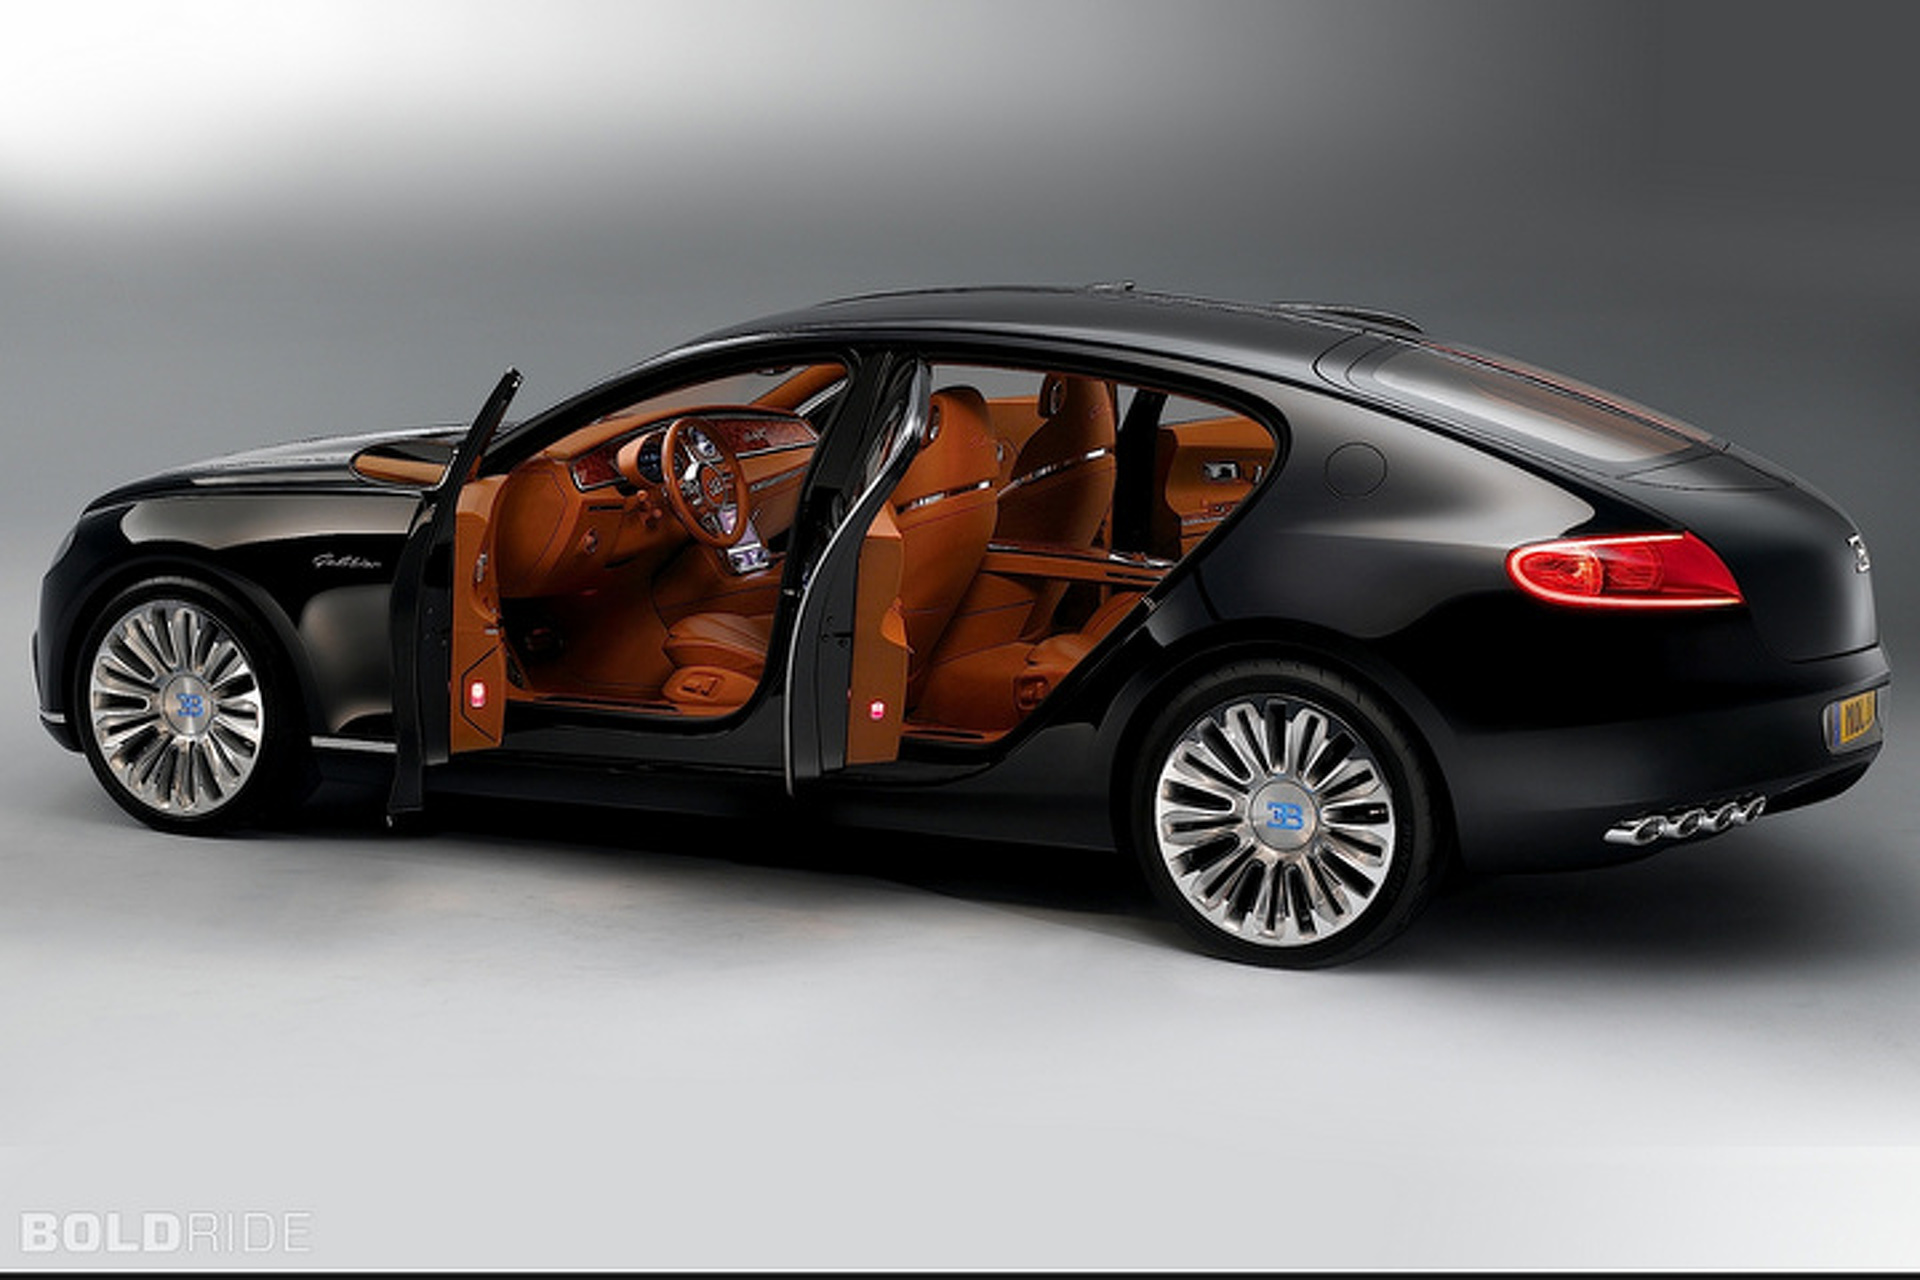 """New Bugatti Model Coming in 2016: """"Not a Veyron Replacement"""""""